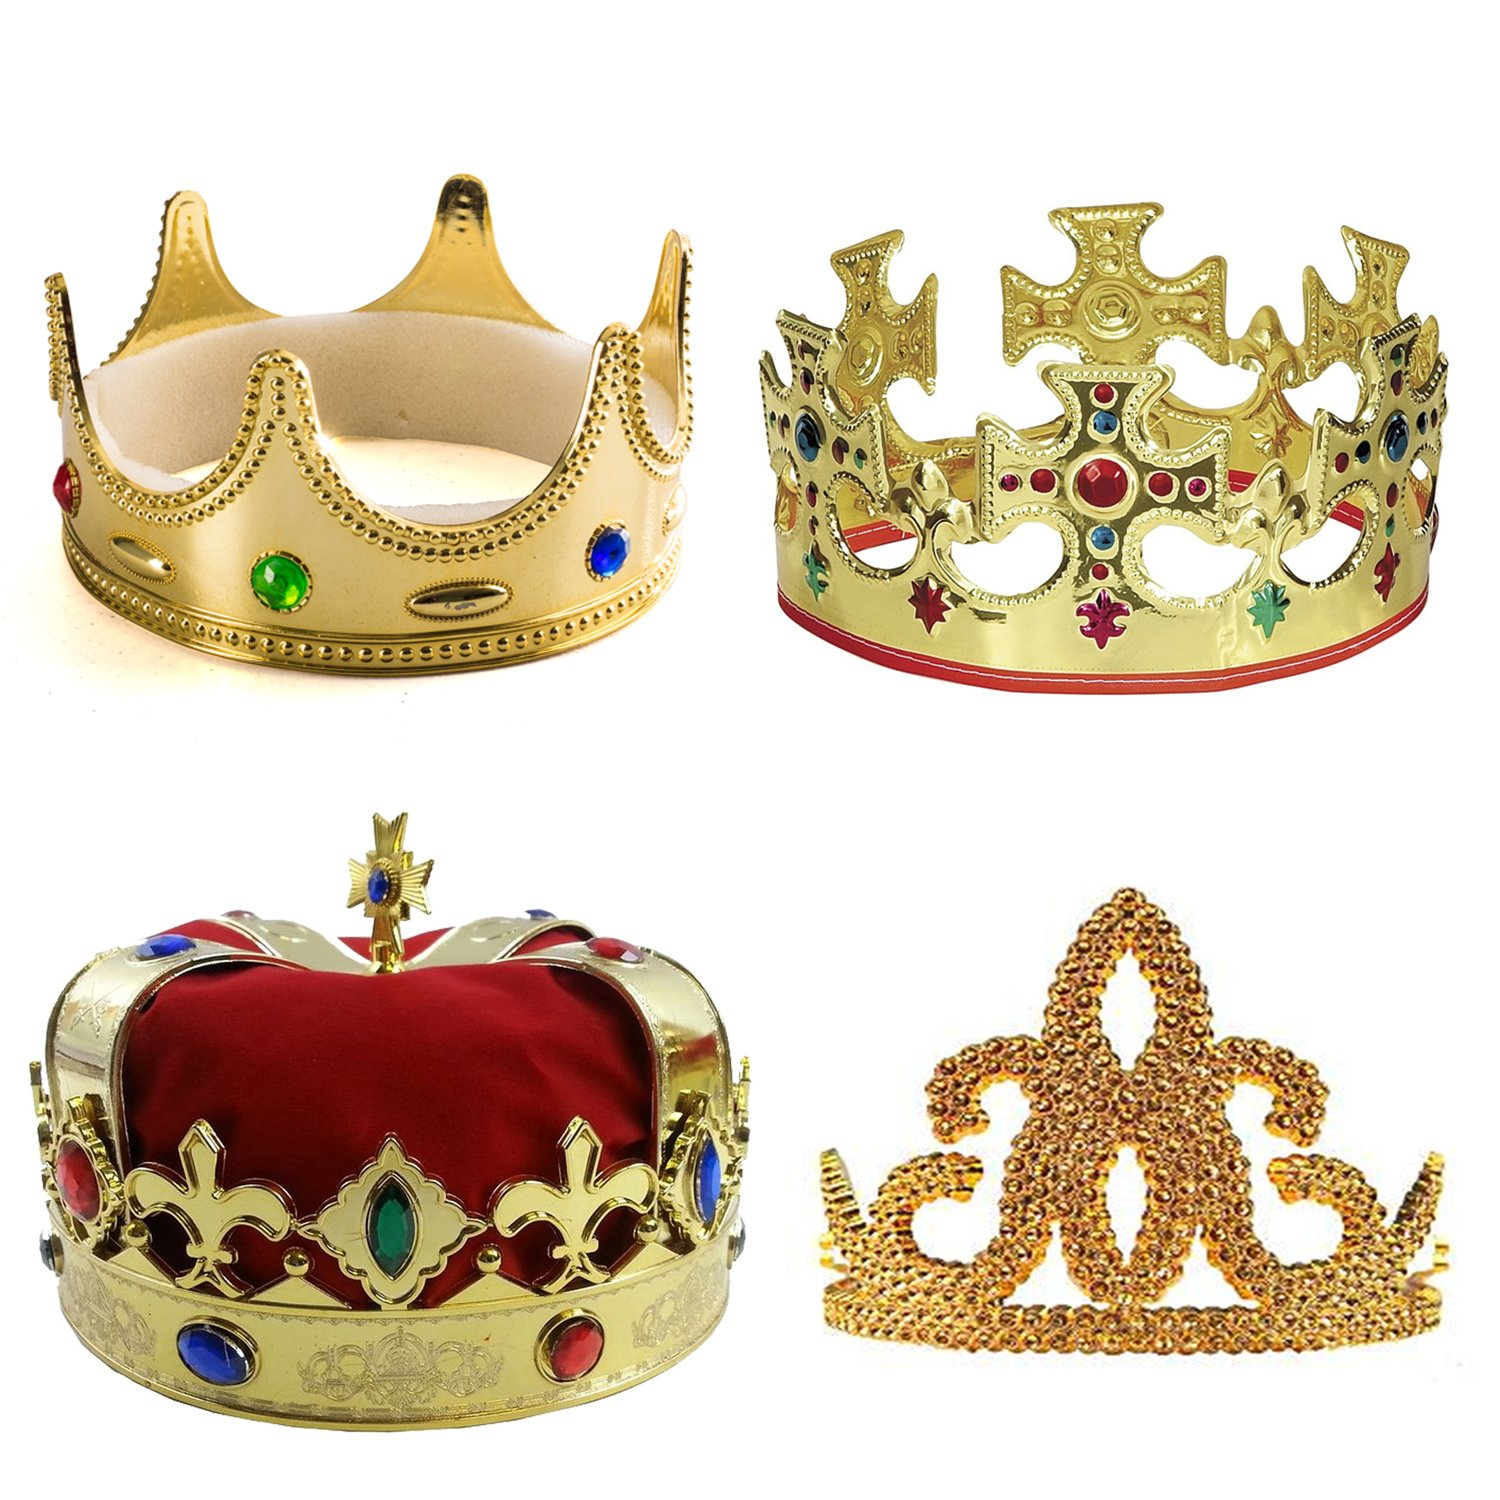 Playo Gold Foil Crowns Pack of 12 Gold King Crowns Perfect for King Costume accessories